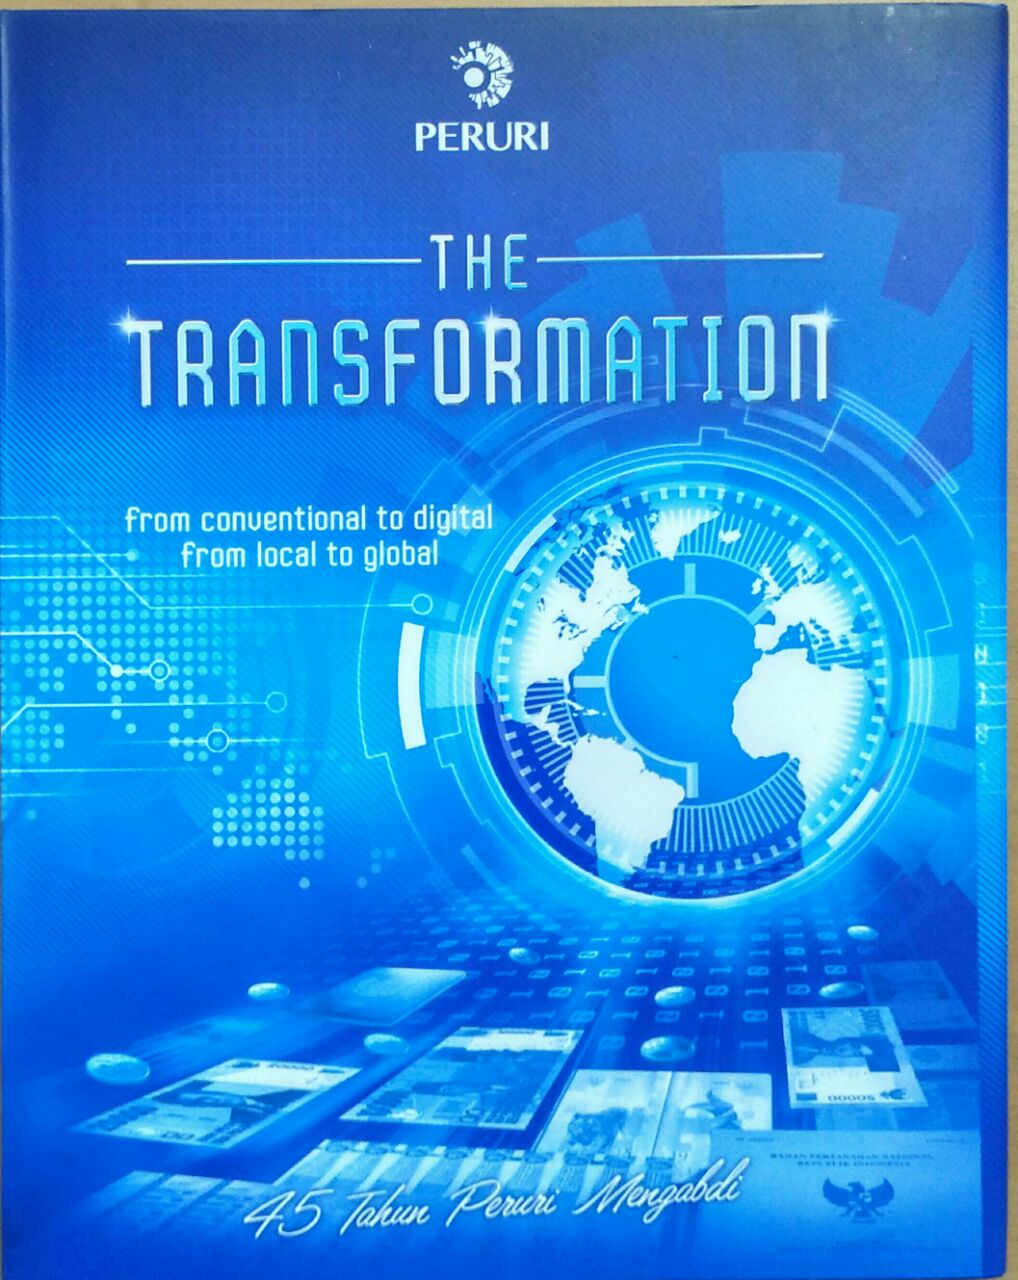 The Transformation : 45 Tahun Peruri Mengabdi : from Conventional to Digital, from Local to Global